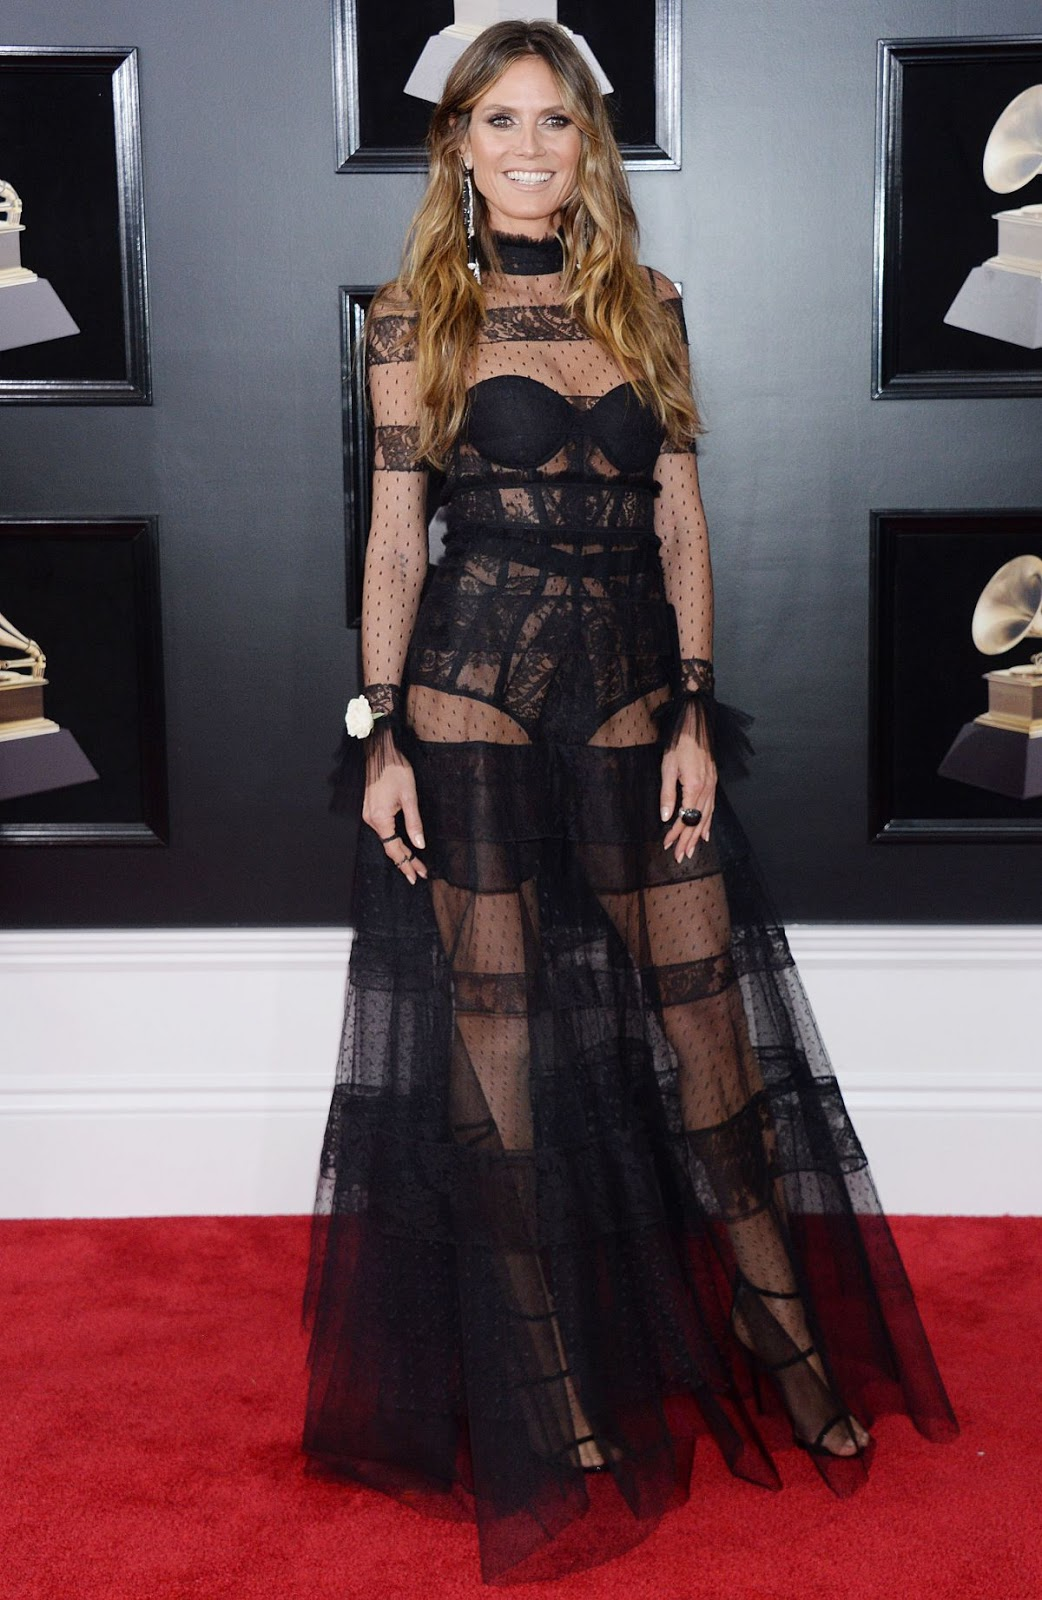 Heidi Klum bares lingerie at the 2018 Grammy Awards